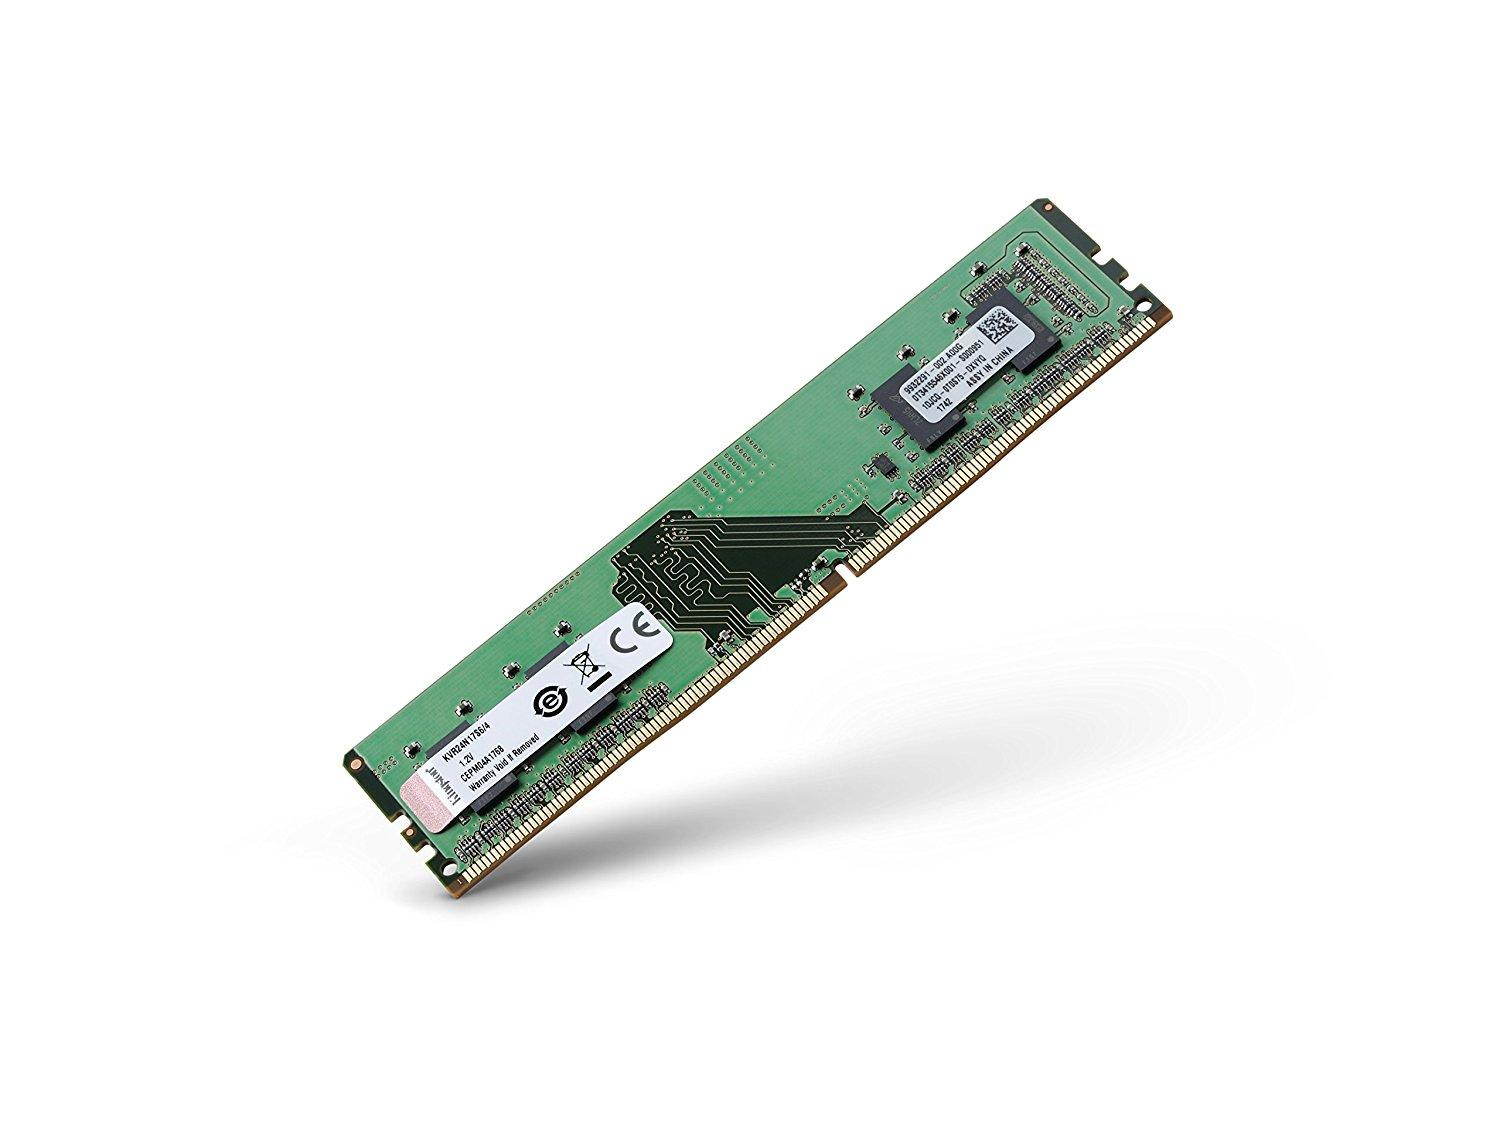 Памет Kingston 4GB DDR4 PC4-19200 2400MHz CL17 KVR24N17S6/4